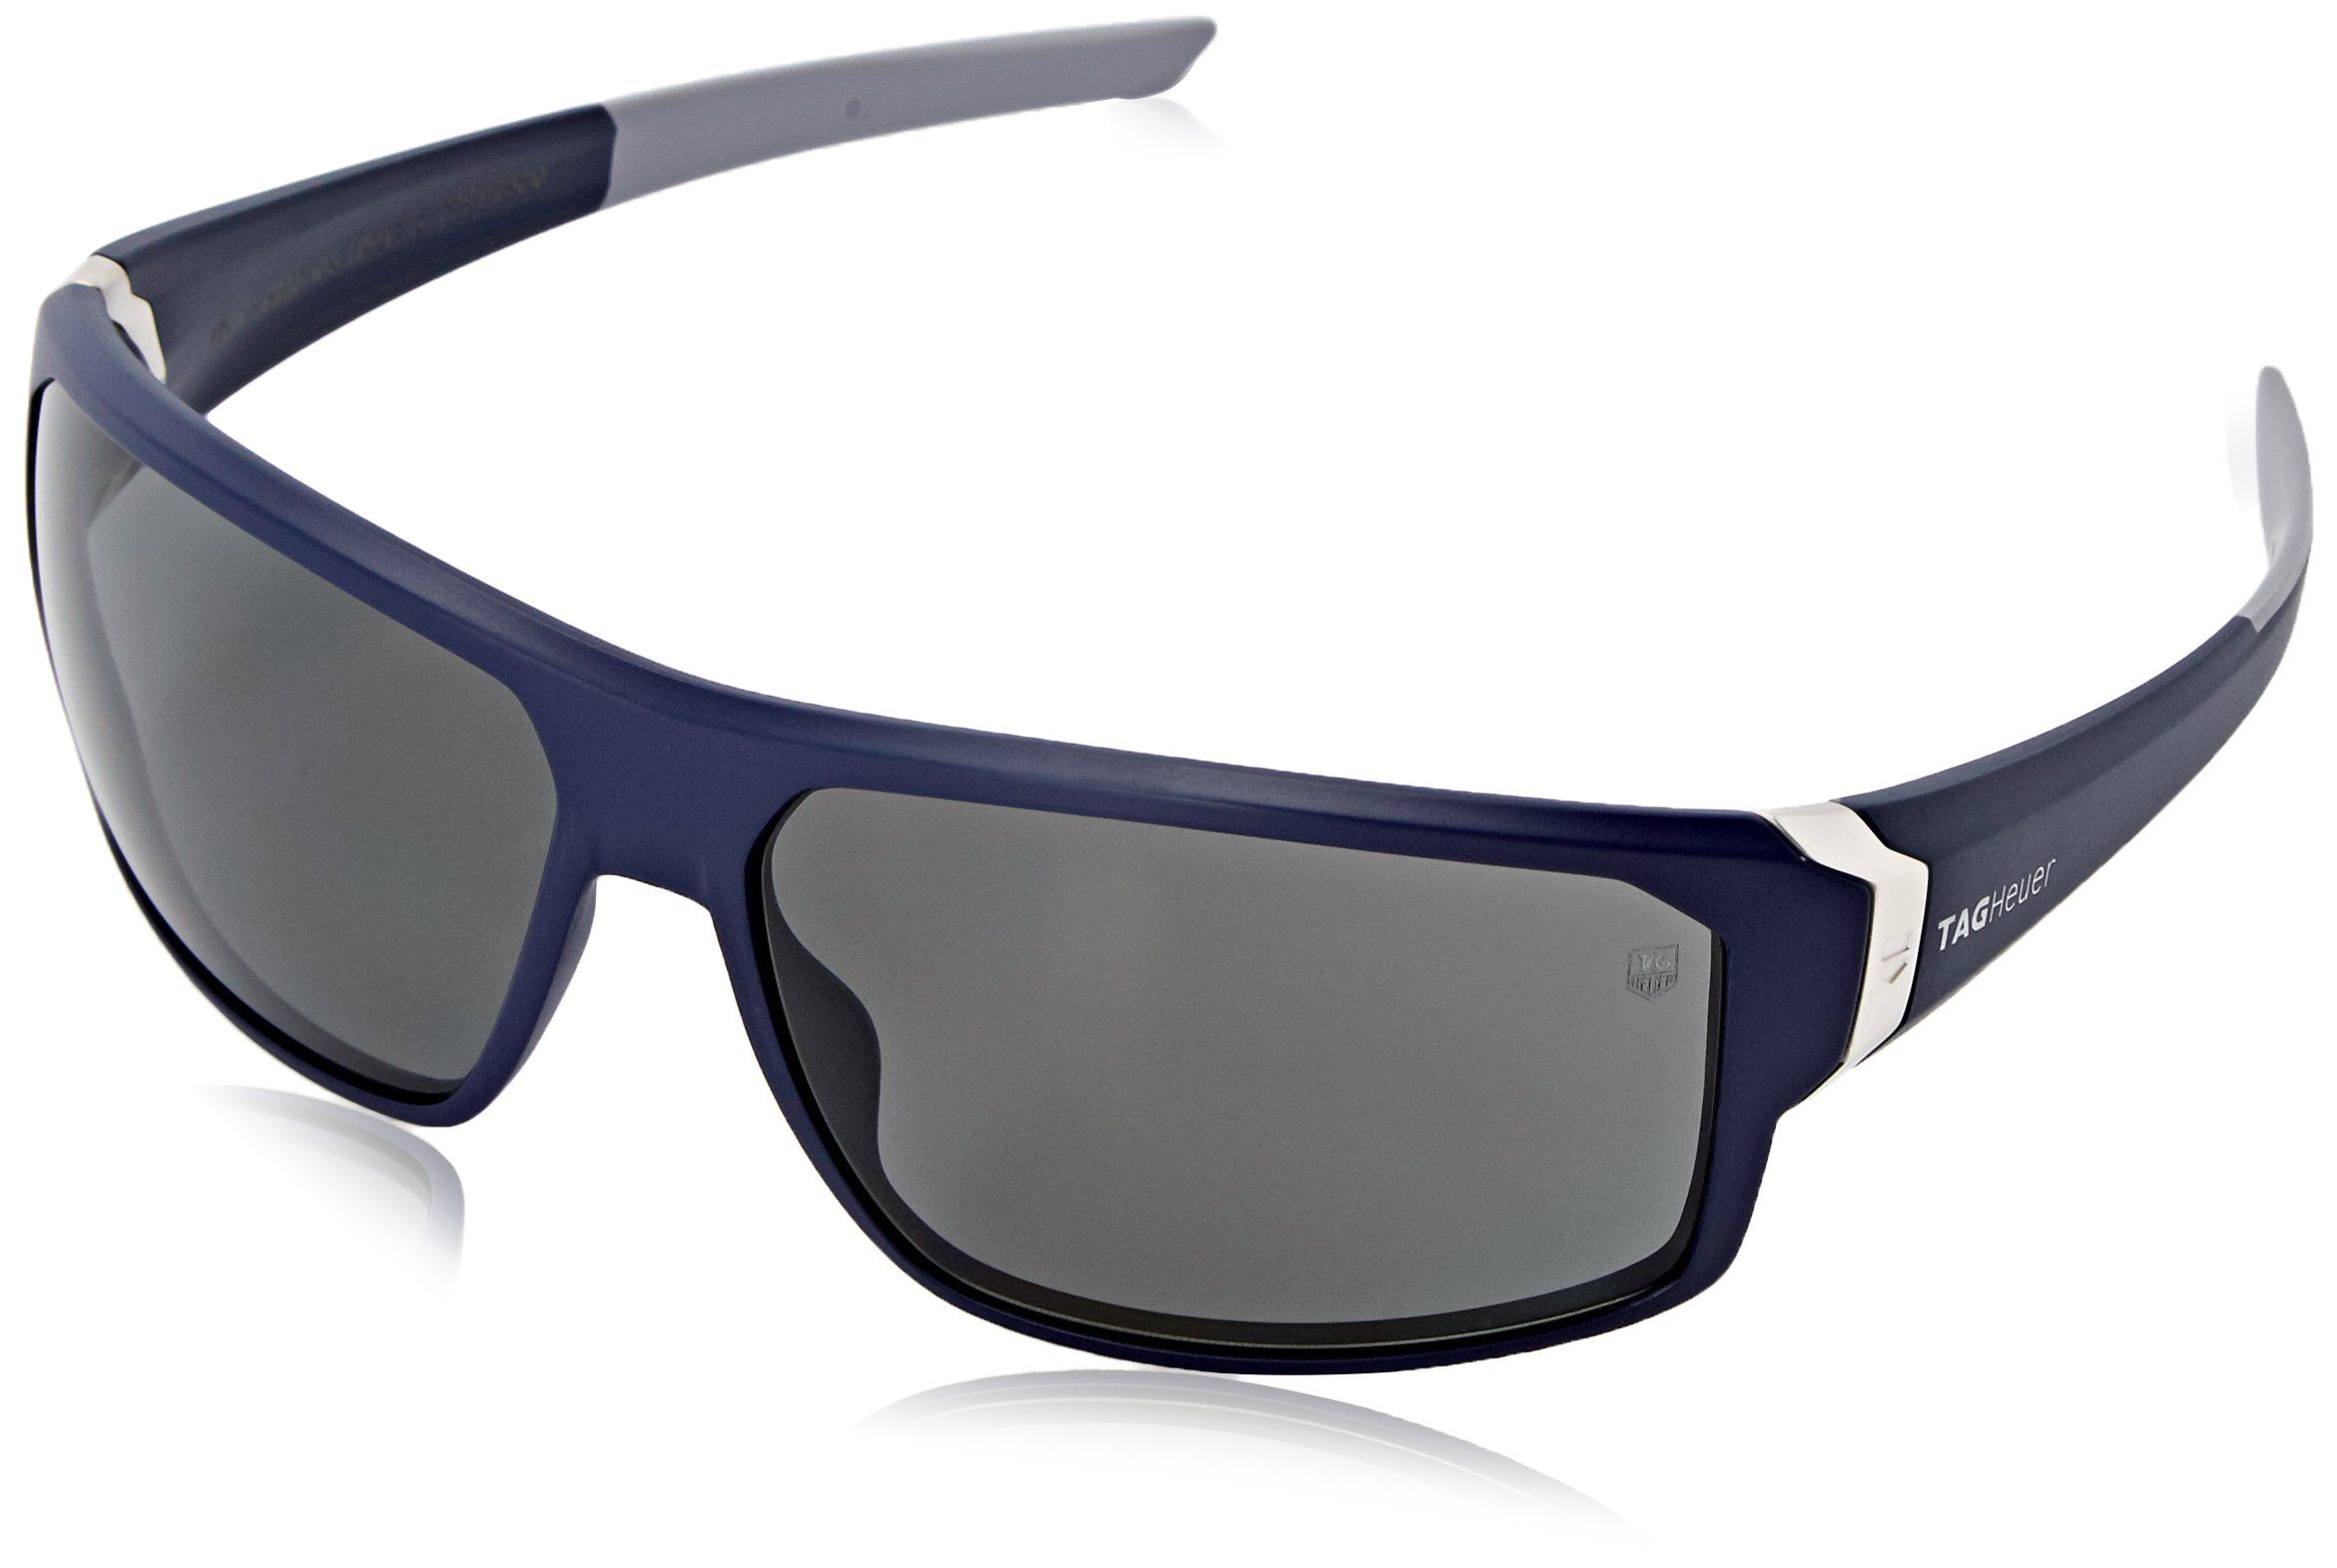 Tag Heuer Racer2 9223 106 Rectangular Sunglasses, Blue & Grey, 70 mm. Case Included^Lenses are prescription ready (Rx-able).